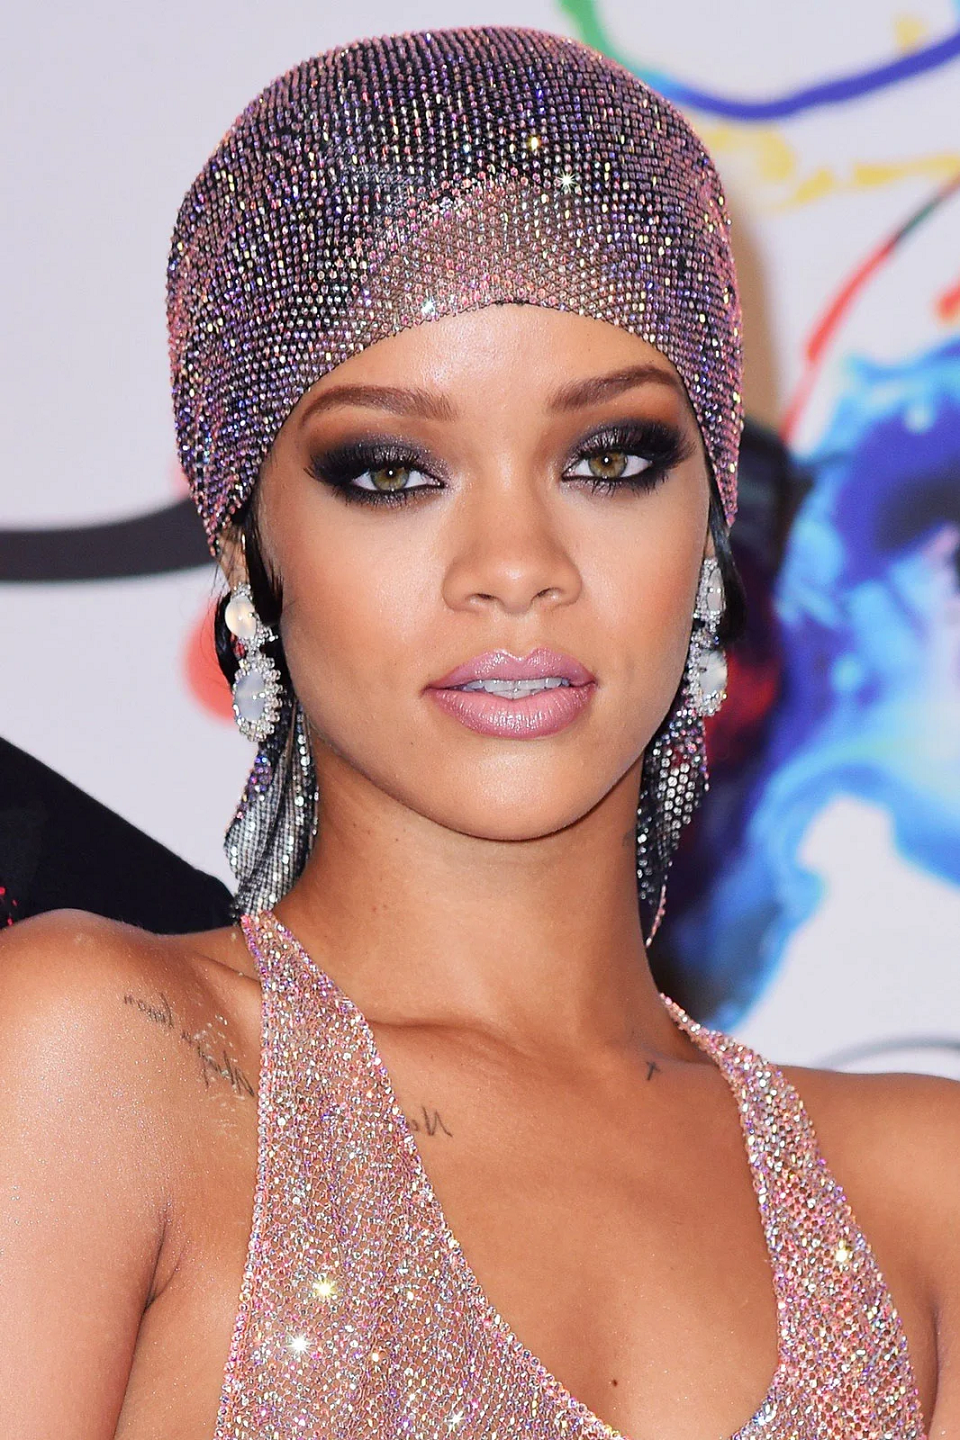 Amazing Hollywood celeb bling. Iced Out, Lavender Eye and Matching Head Wrap with Rhinestones